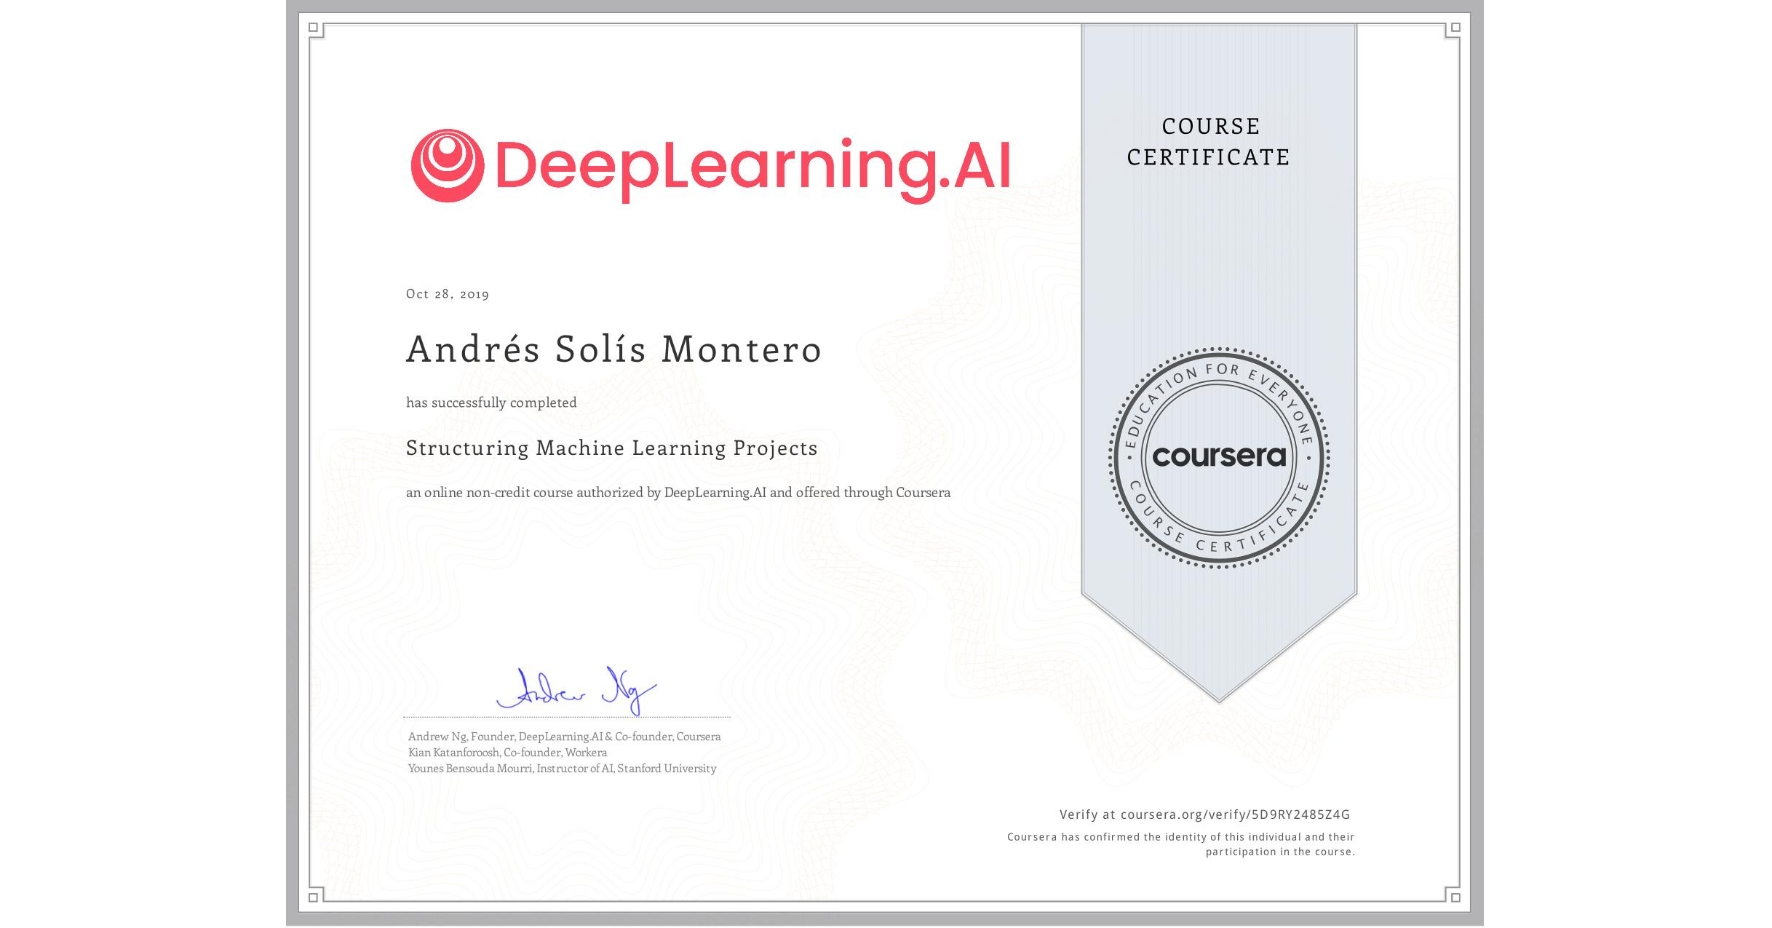 View certificate for Andrés Solís Montero, Structuring Machine Learning Projects, an online non-credit course authorized by DeepLearning.AI and offered through Coursera